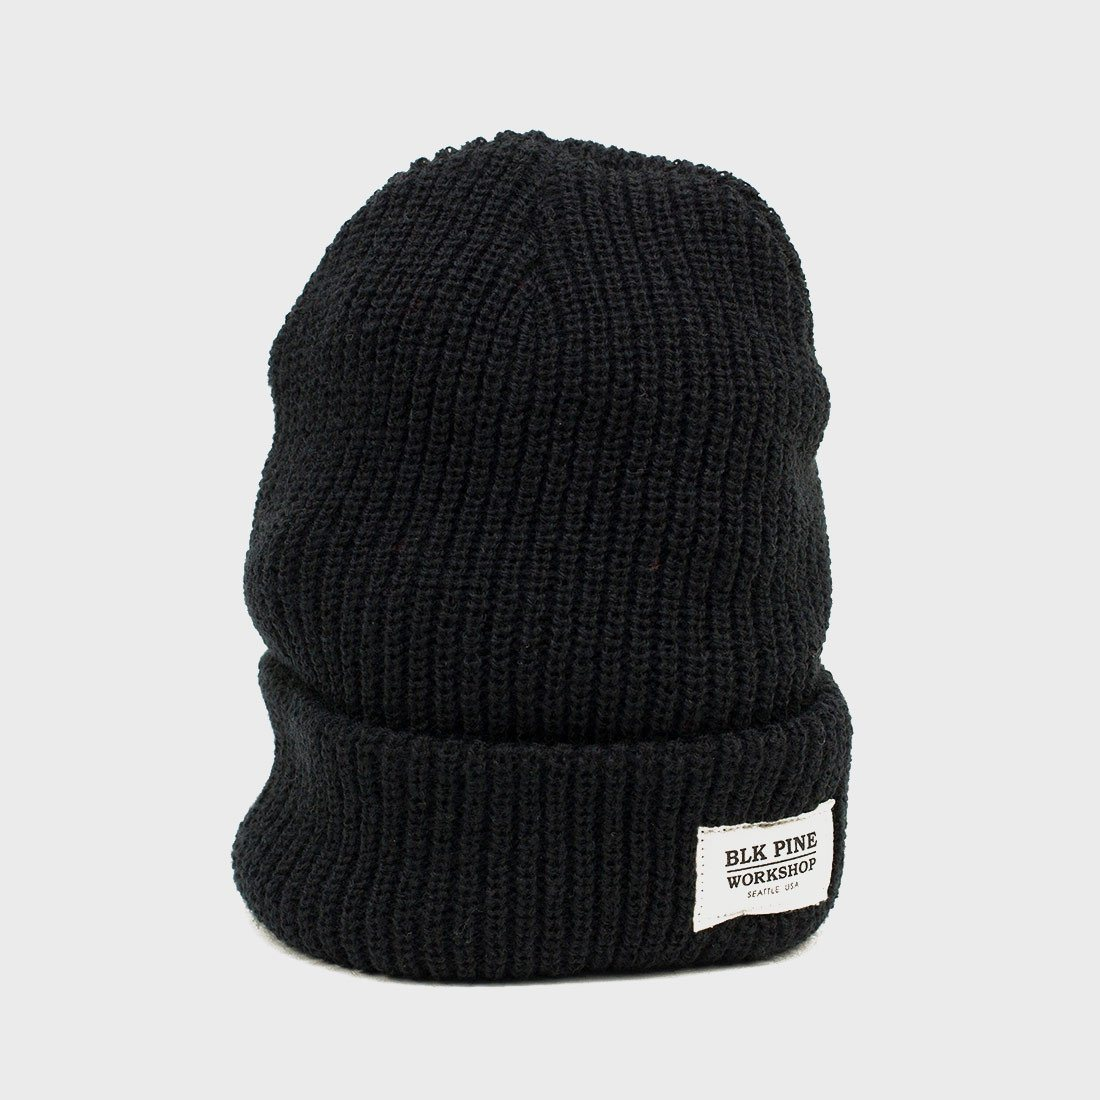 BLK PINE Single Gauge Beanie Black